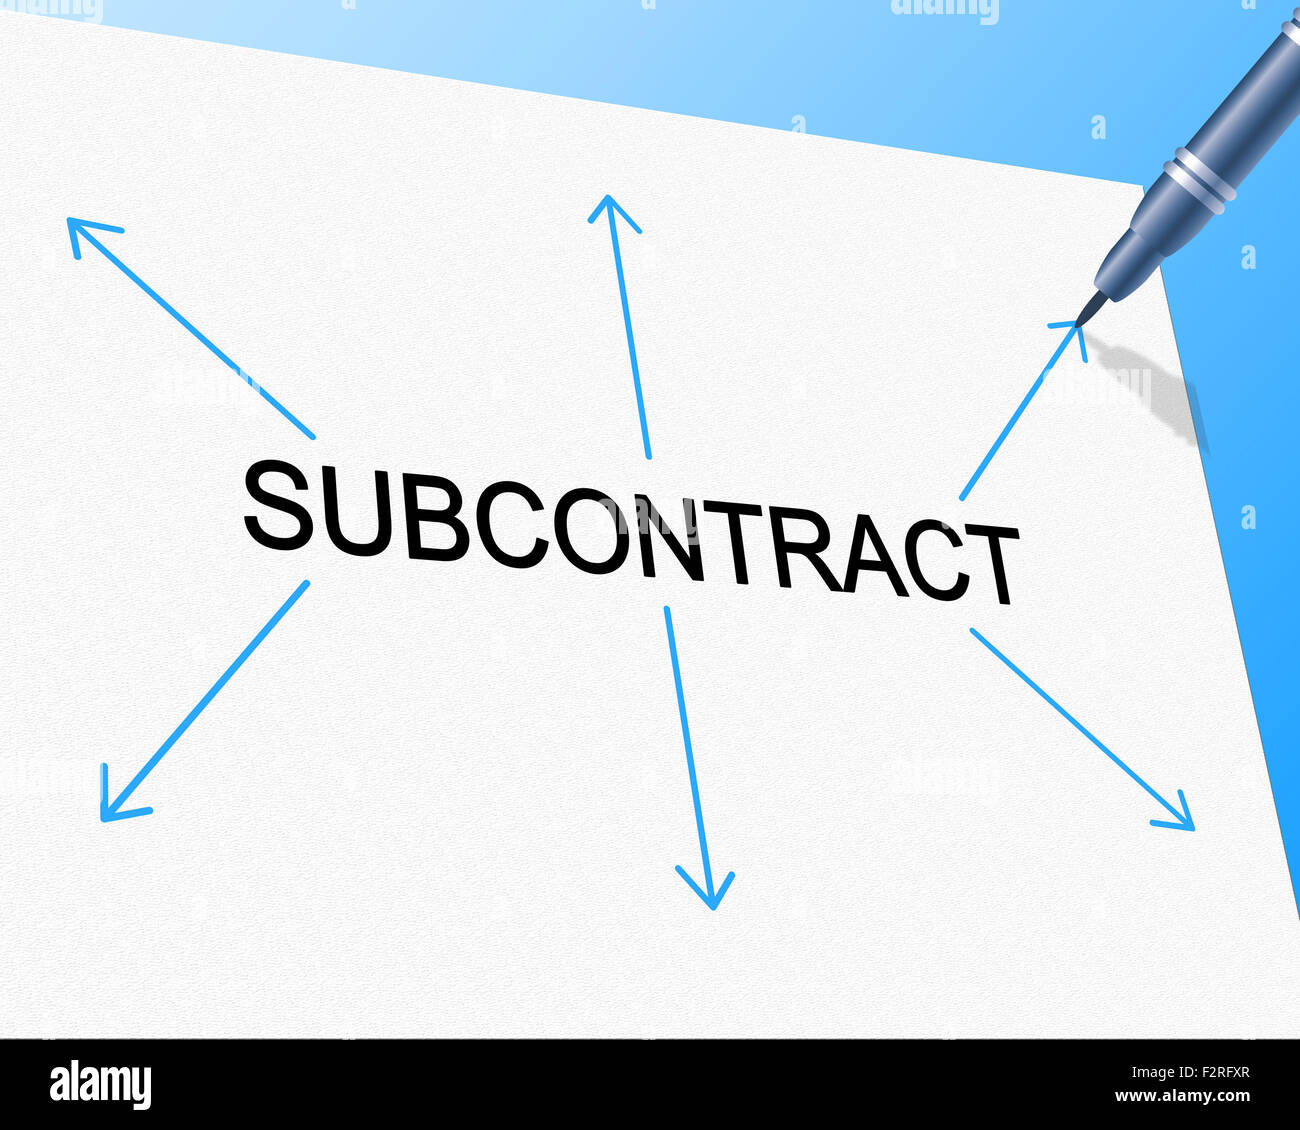 Subcontract Subcontracting Showing Independent Contractor